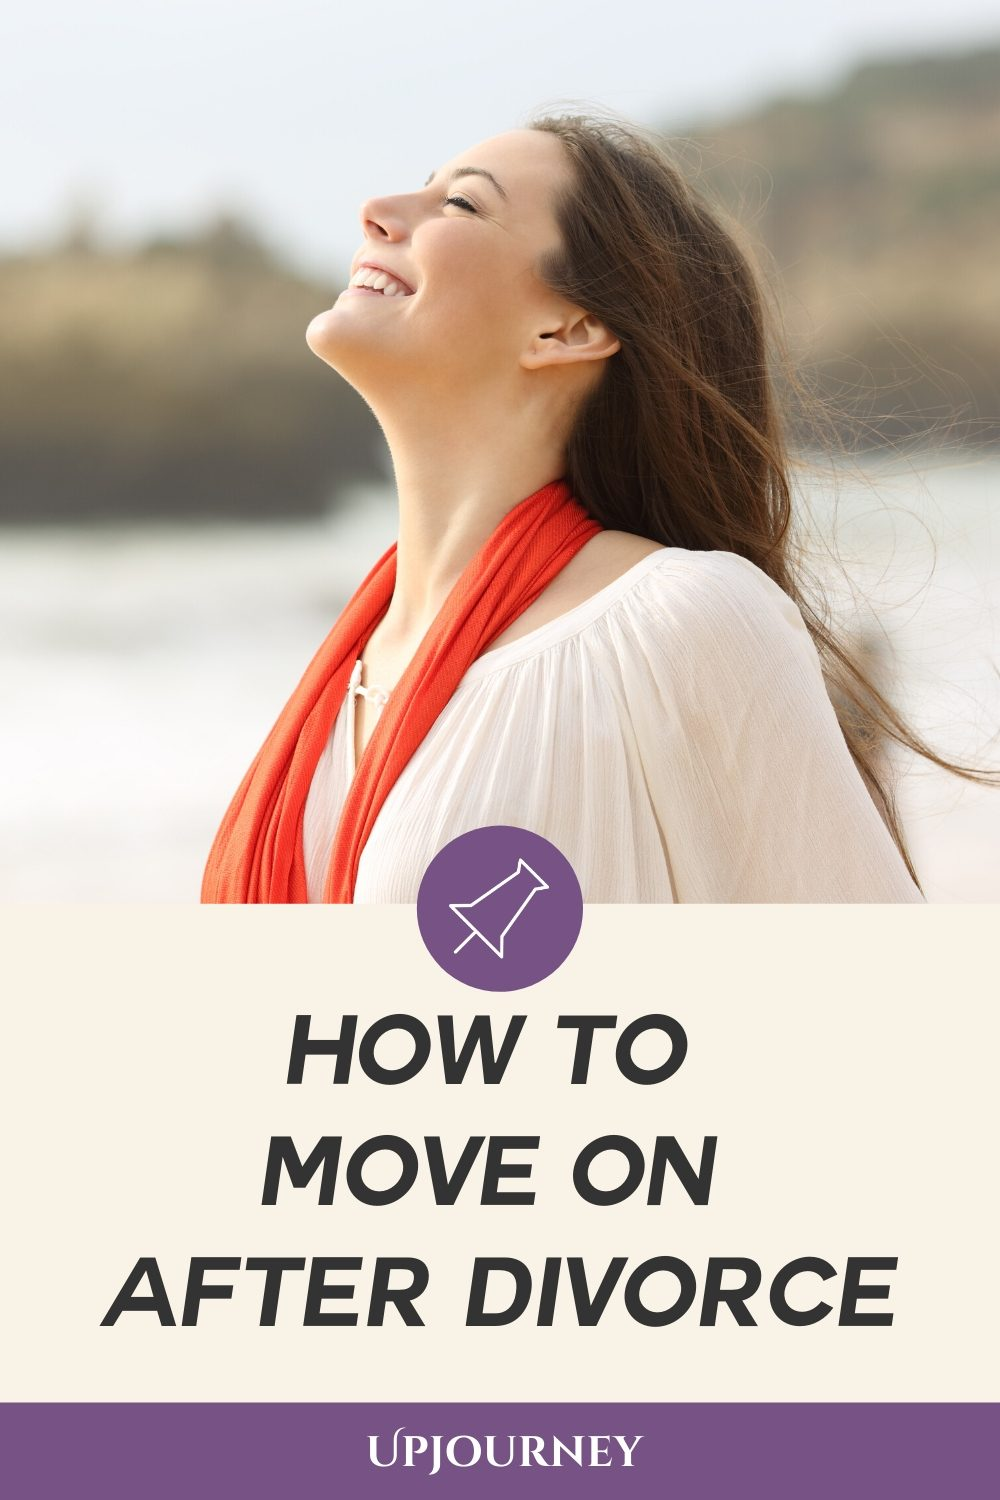 How to Move on After Divorce